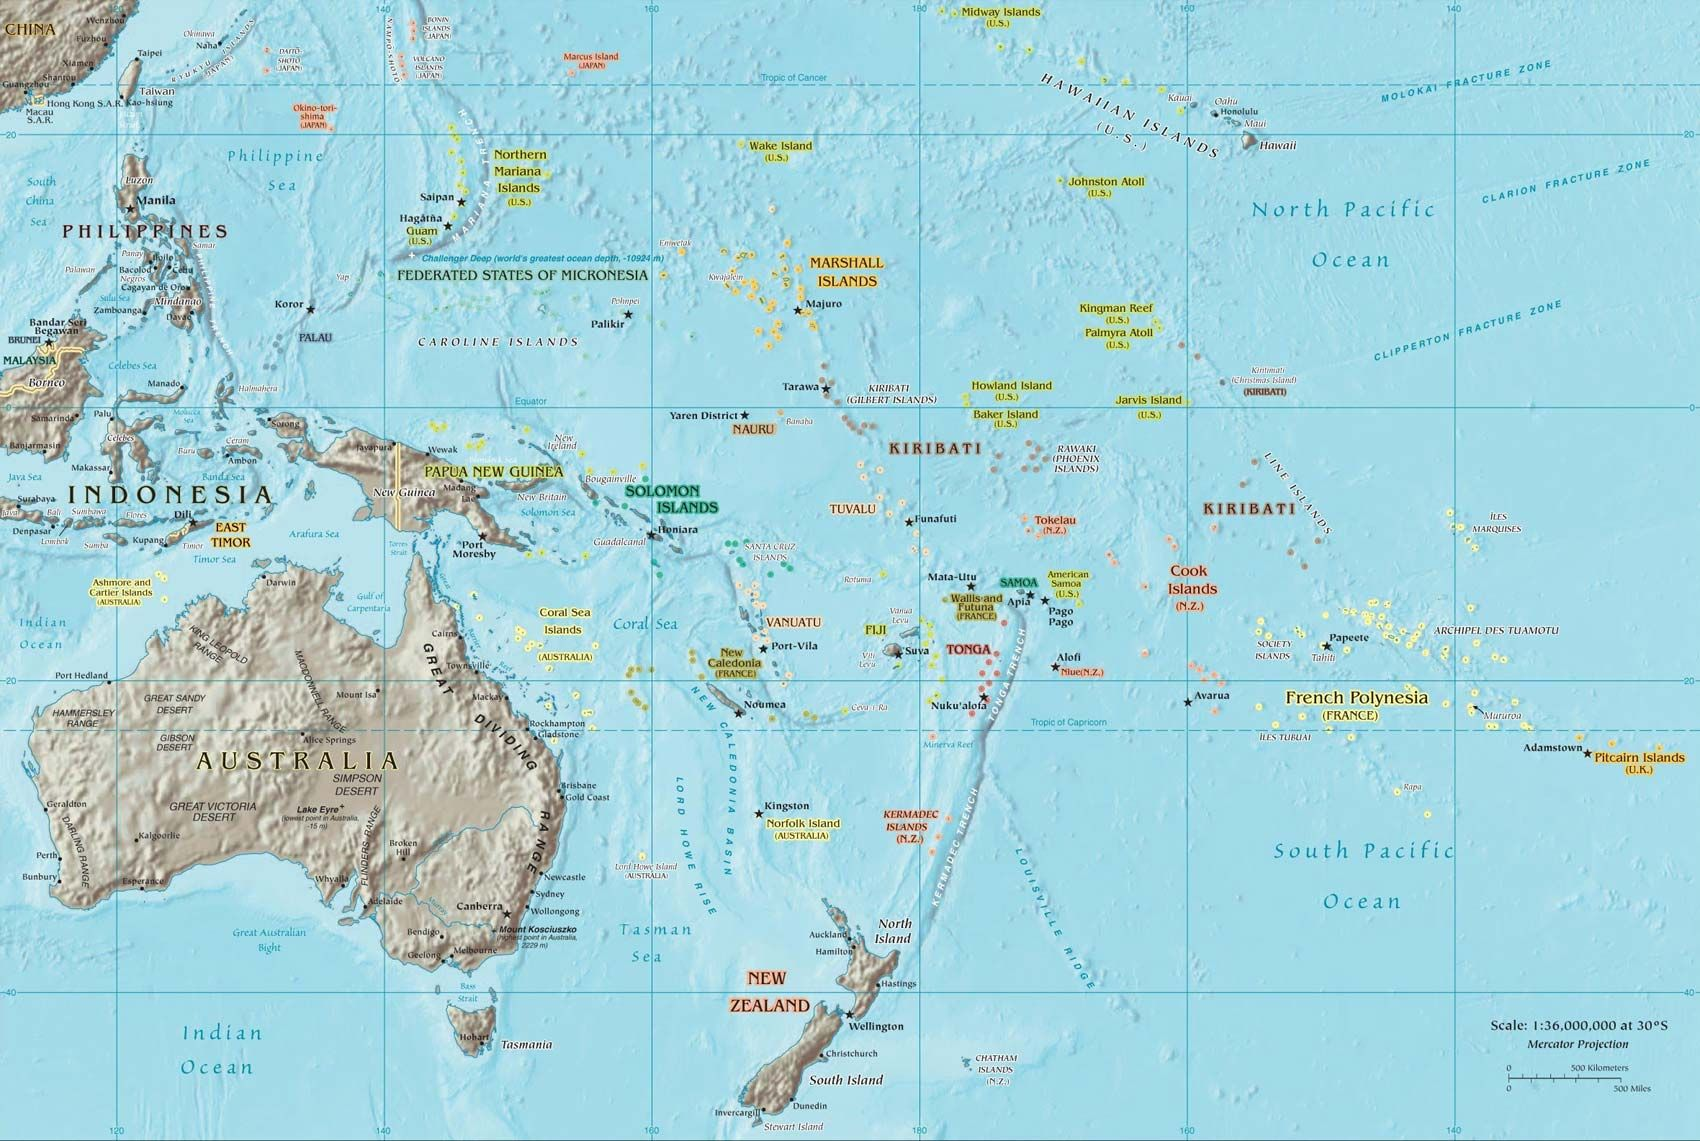 Cook Islands On World Map.South Pacific Islands World Map Go Here To Learn About Great Travel